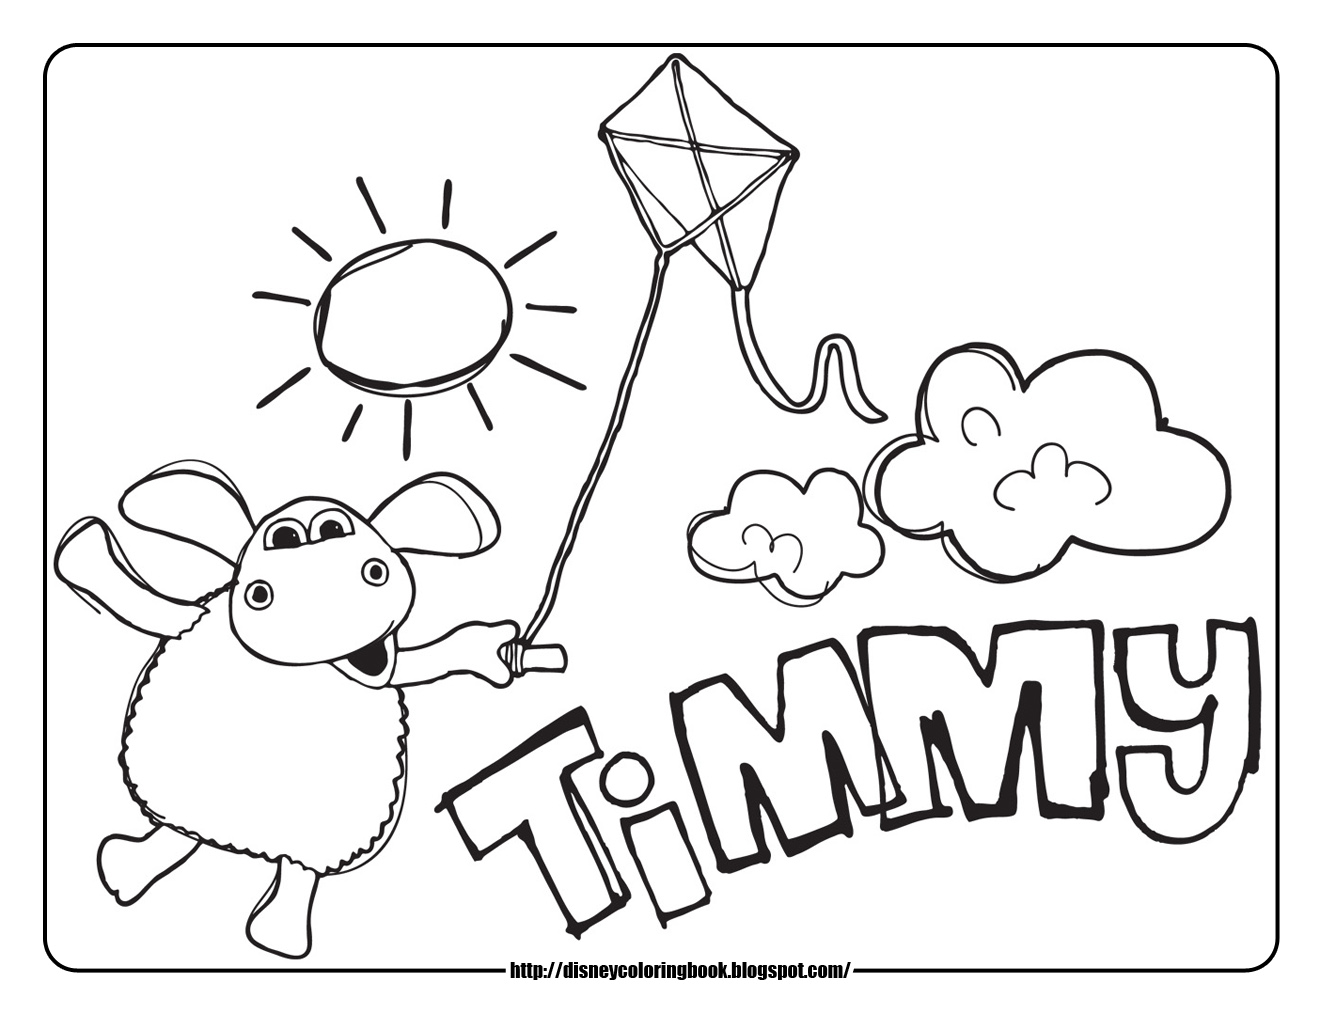 Timmy Time 1: Free Disney Coloring Sheets